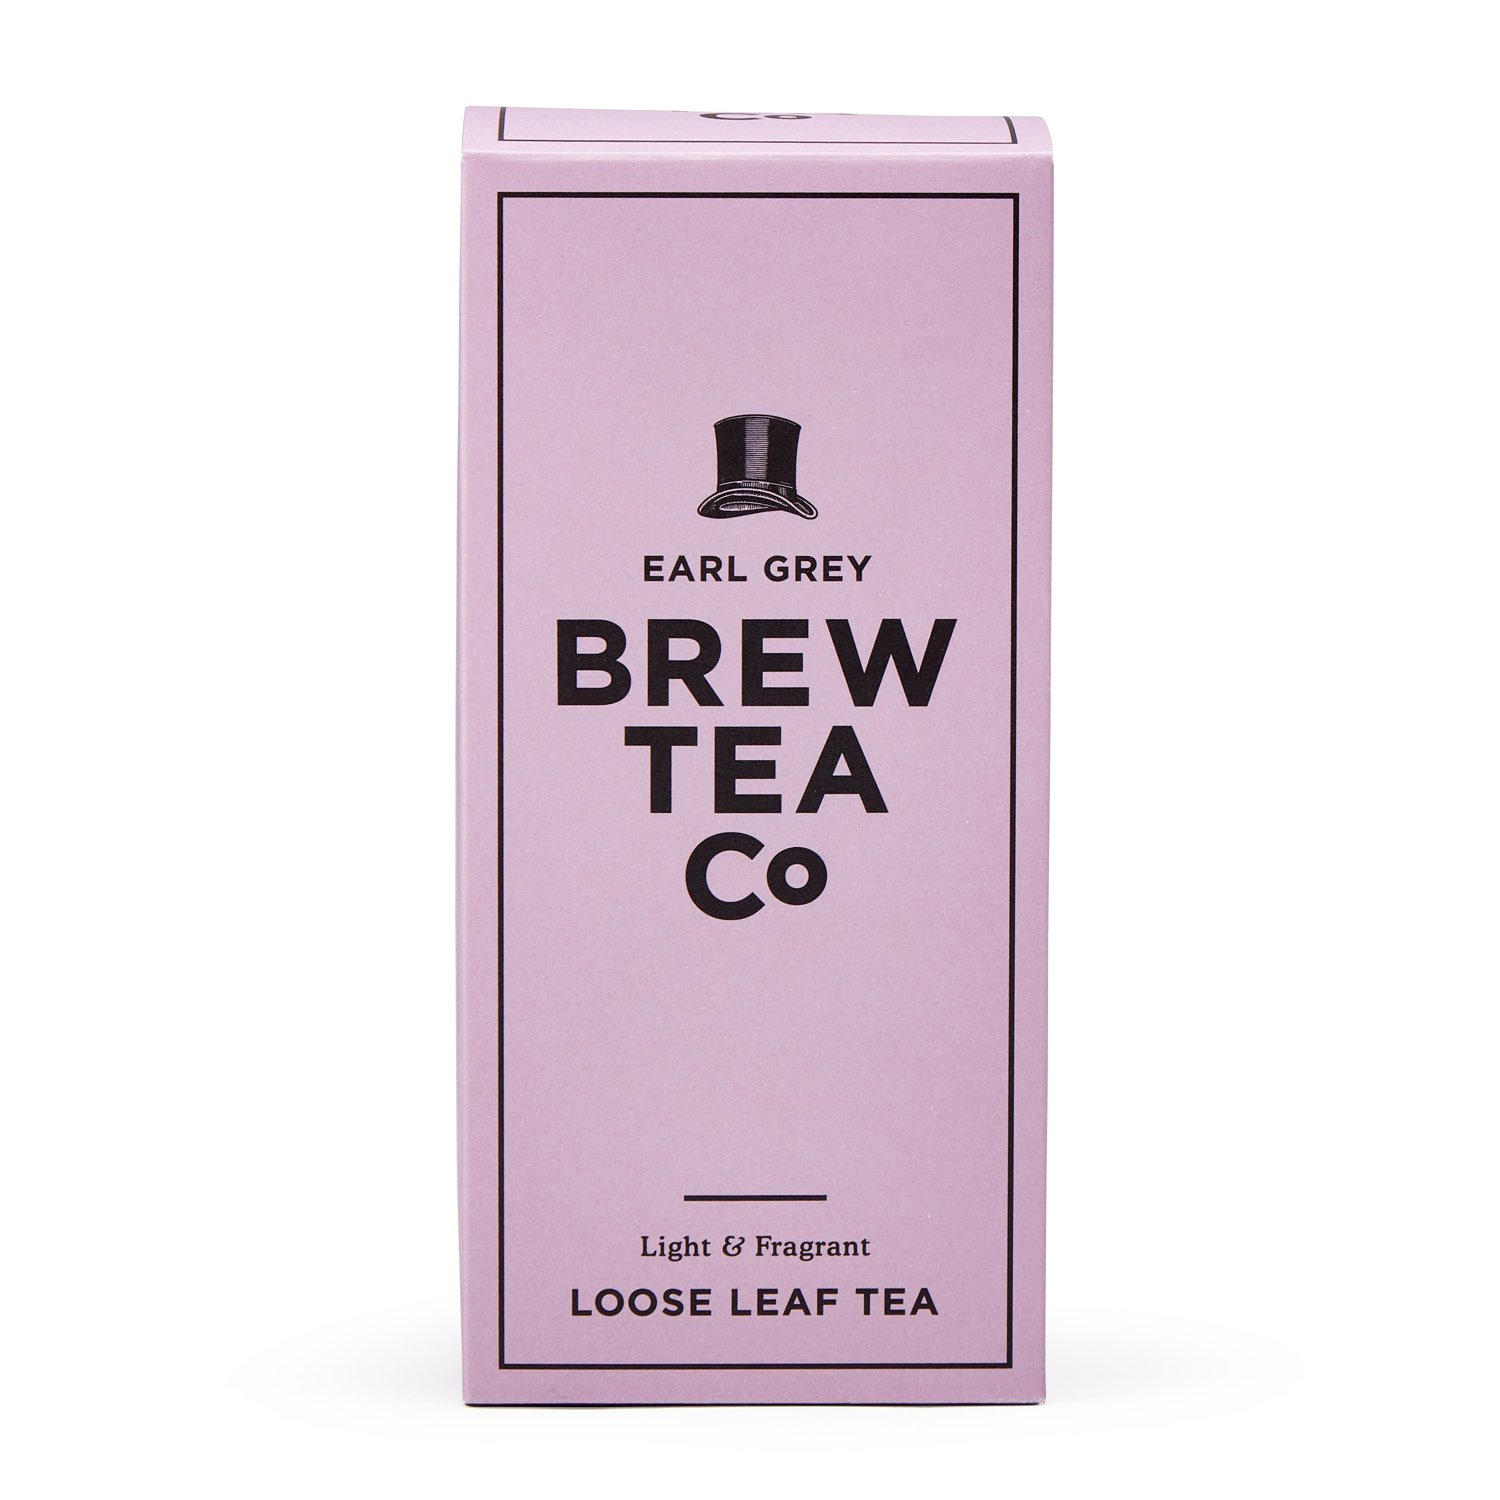 Earl Grey Loose Leaf Tea 113g Brew Tea Co